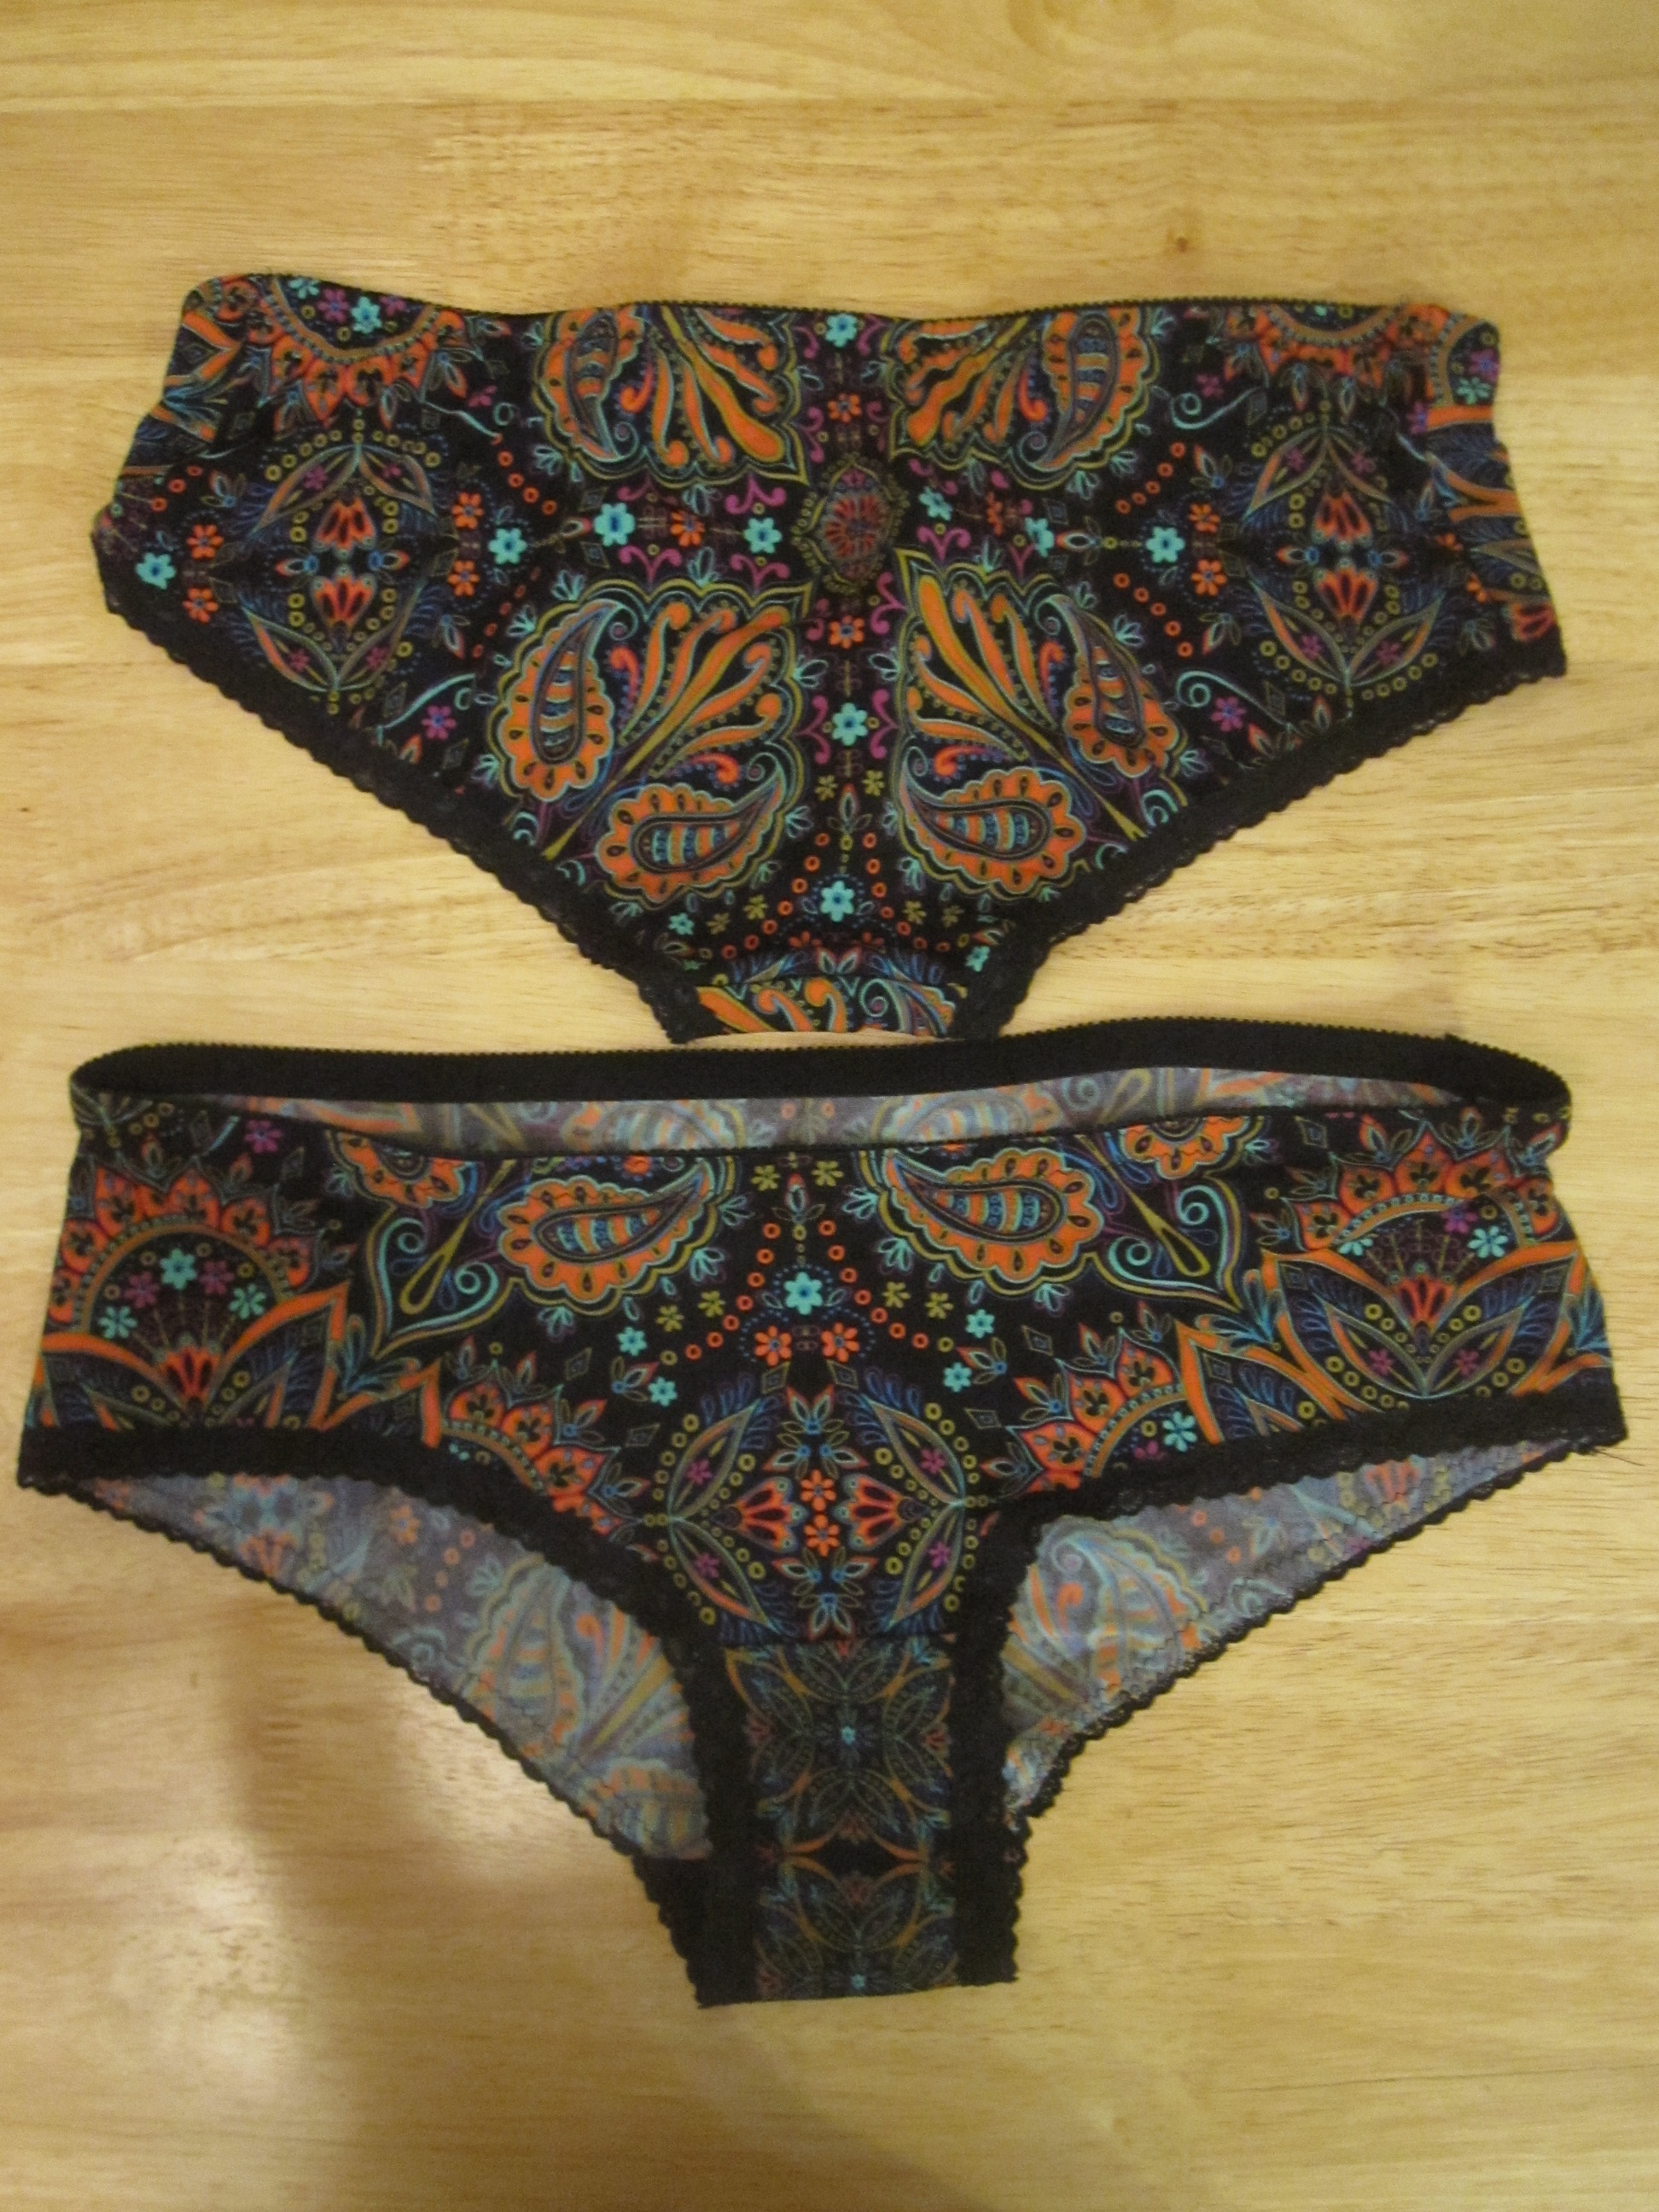 Knickers from Scraps